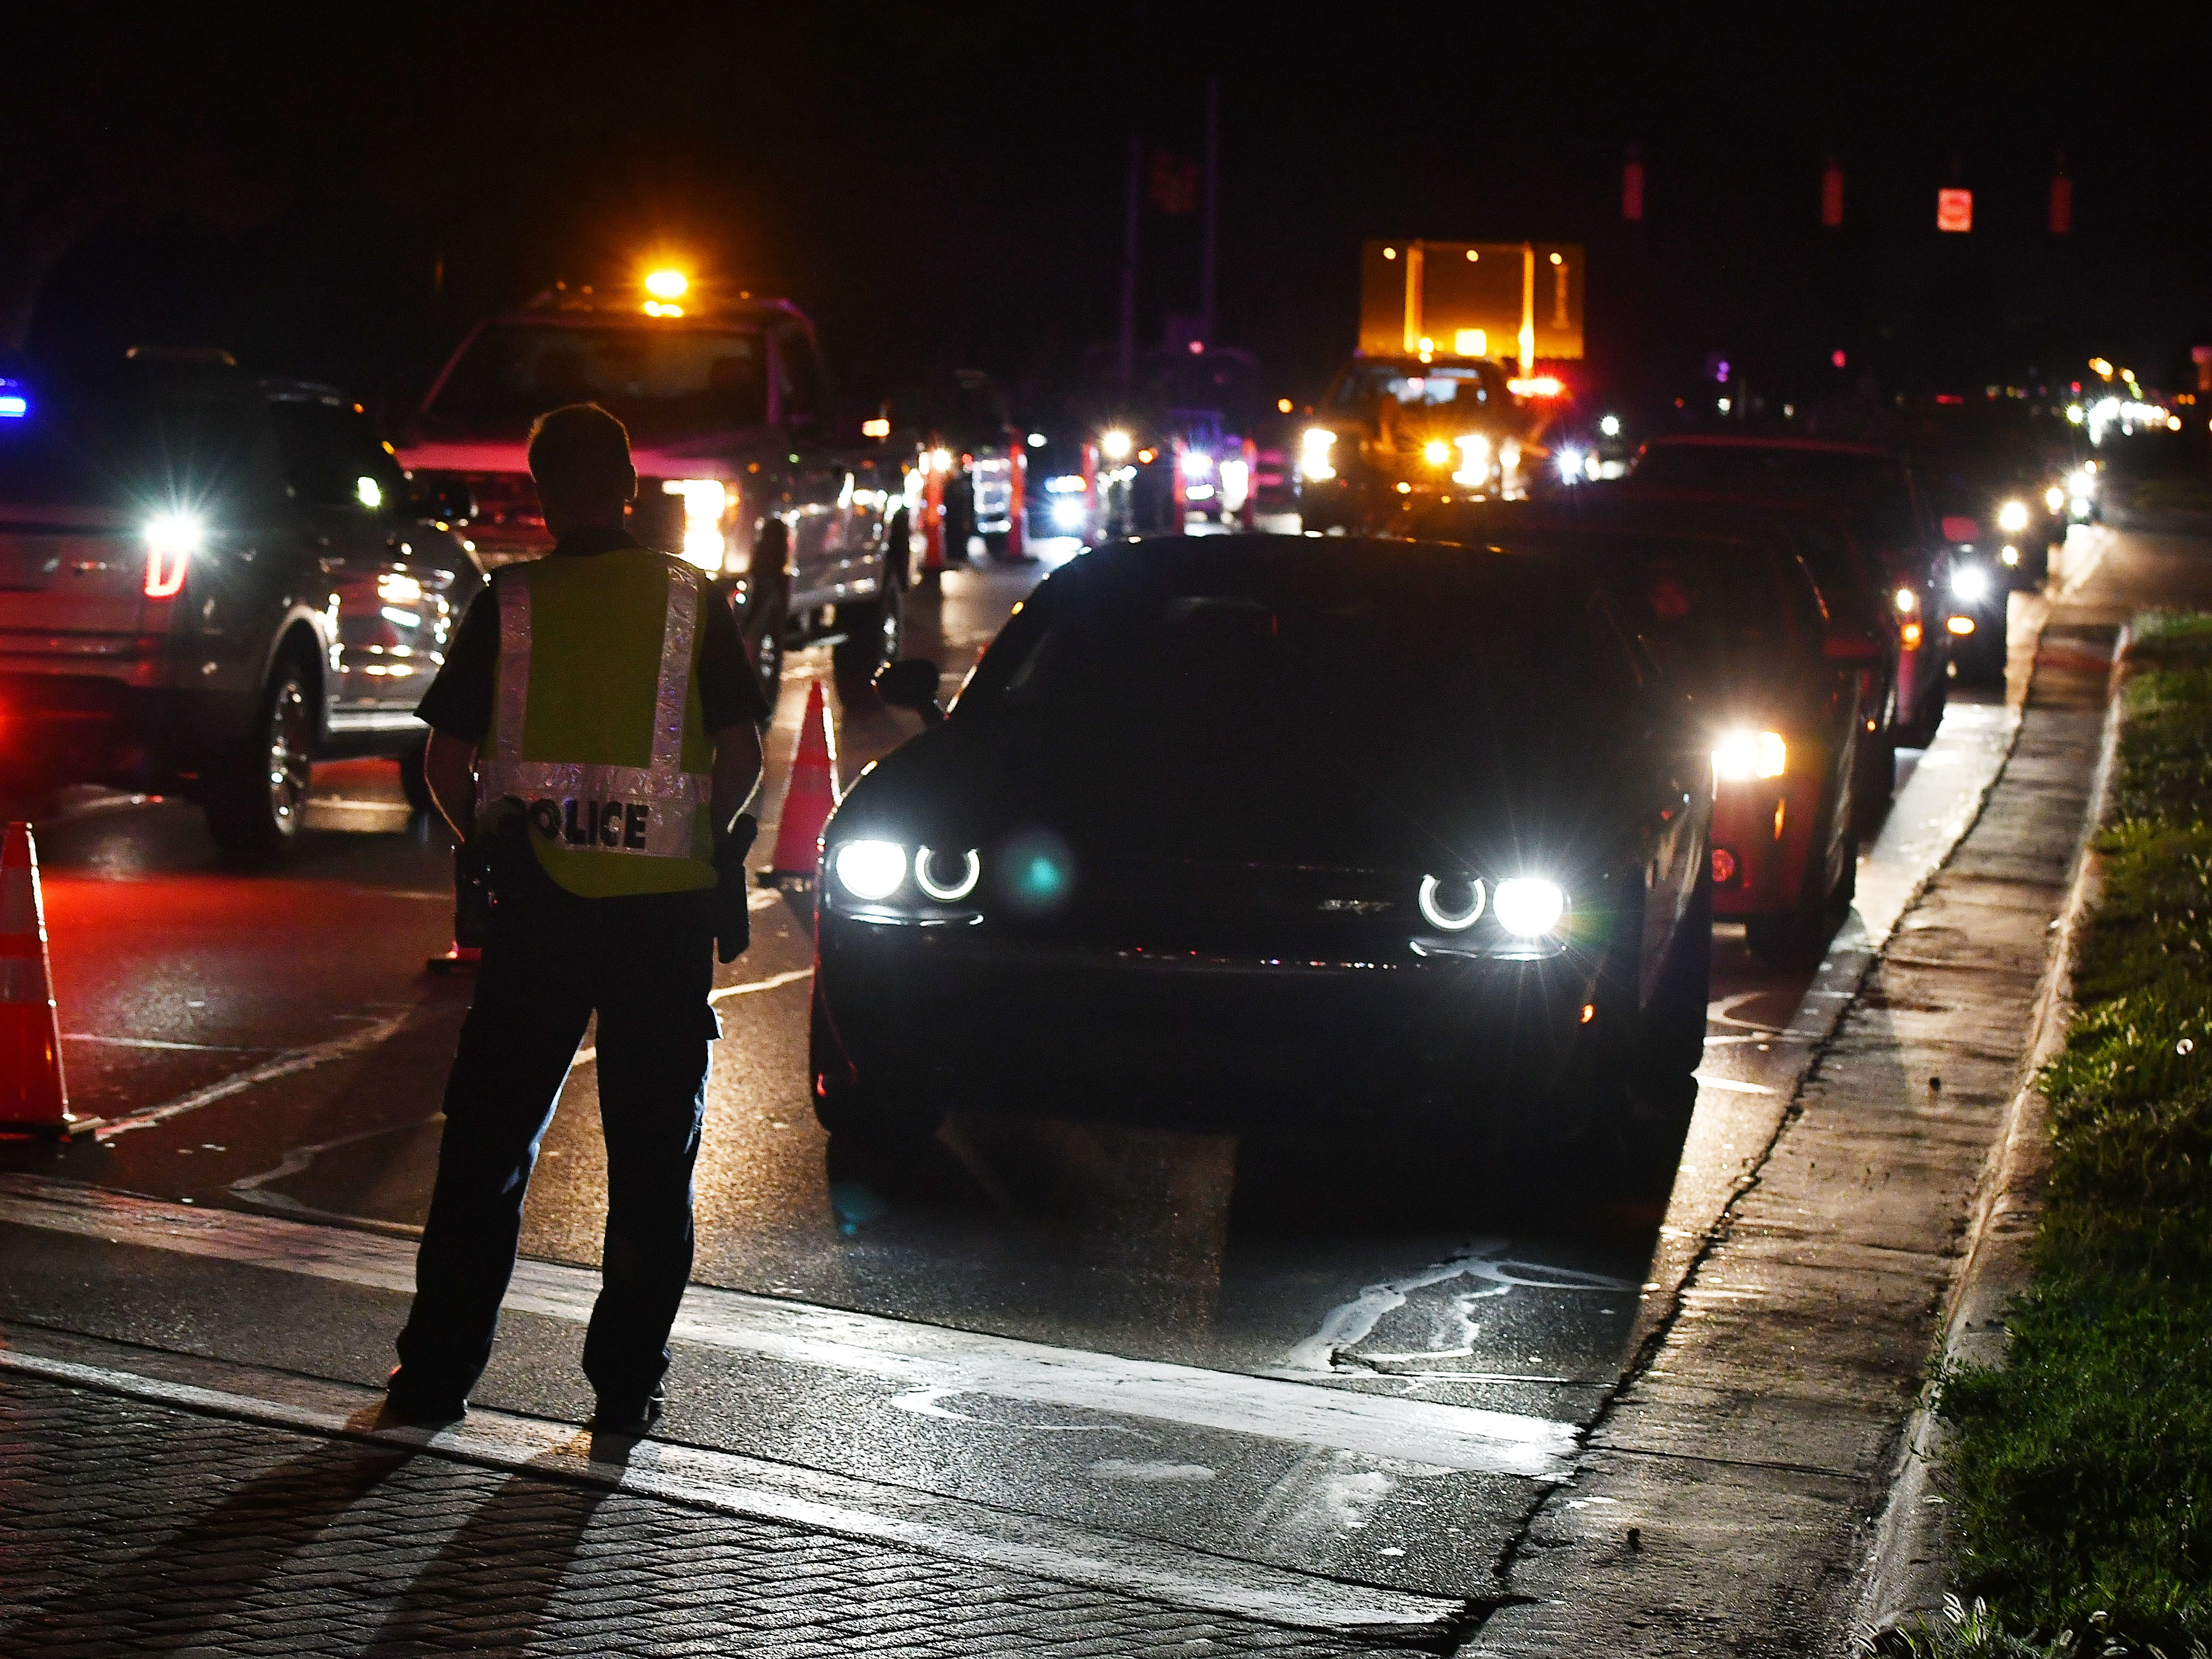 Law enforcement officers begin to clear the traffic off Woodward as 2018 Woodward Dream Cruise comes to an end Saturday night.